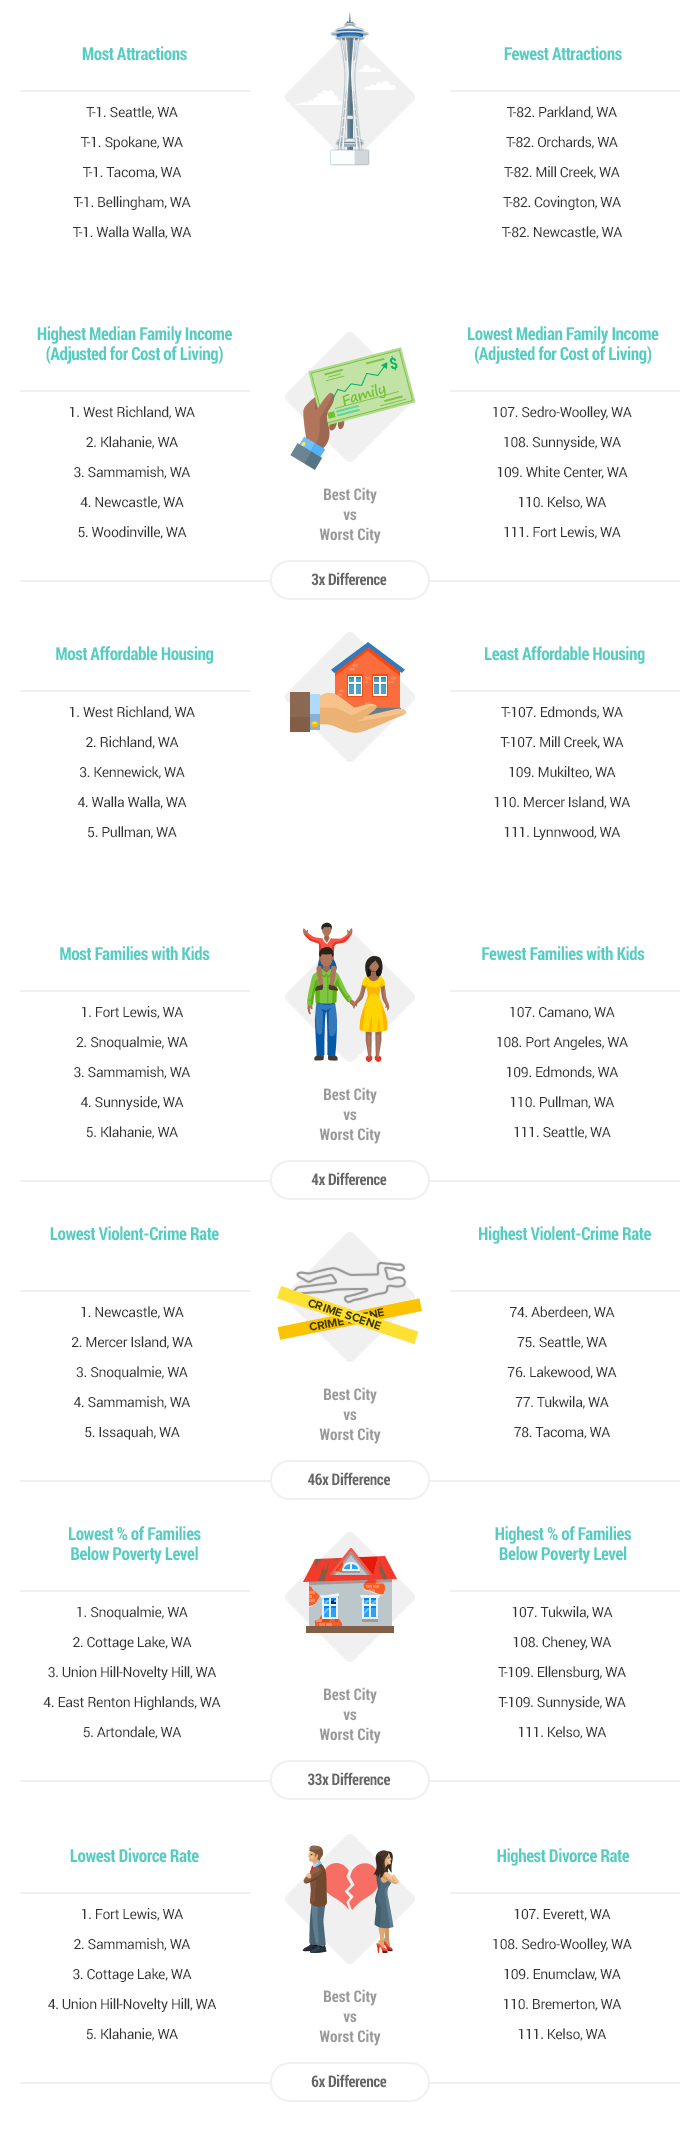 Artwork-Best & Worst Cities for Families in Washington eport-2017-v2